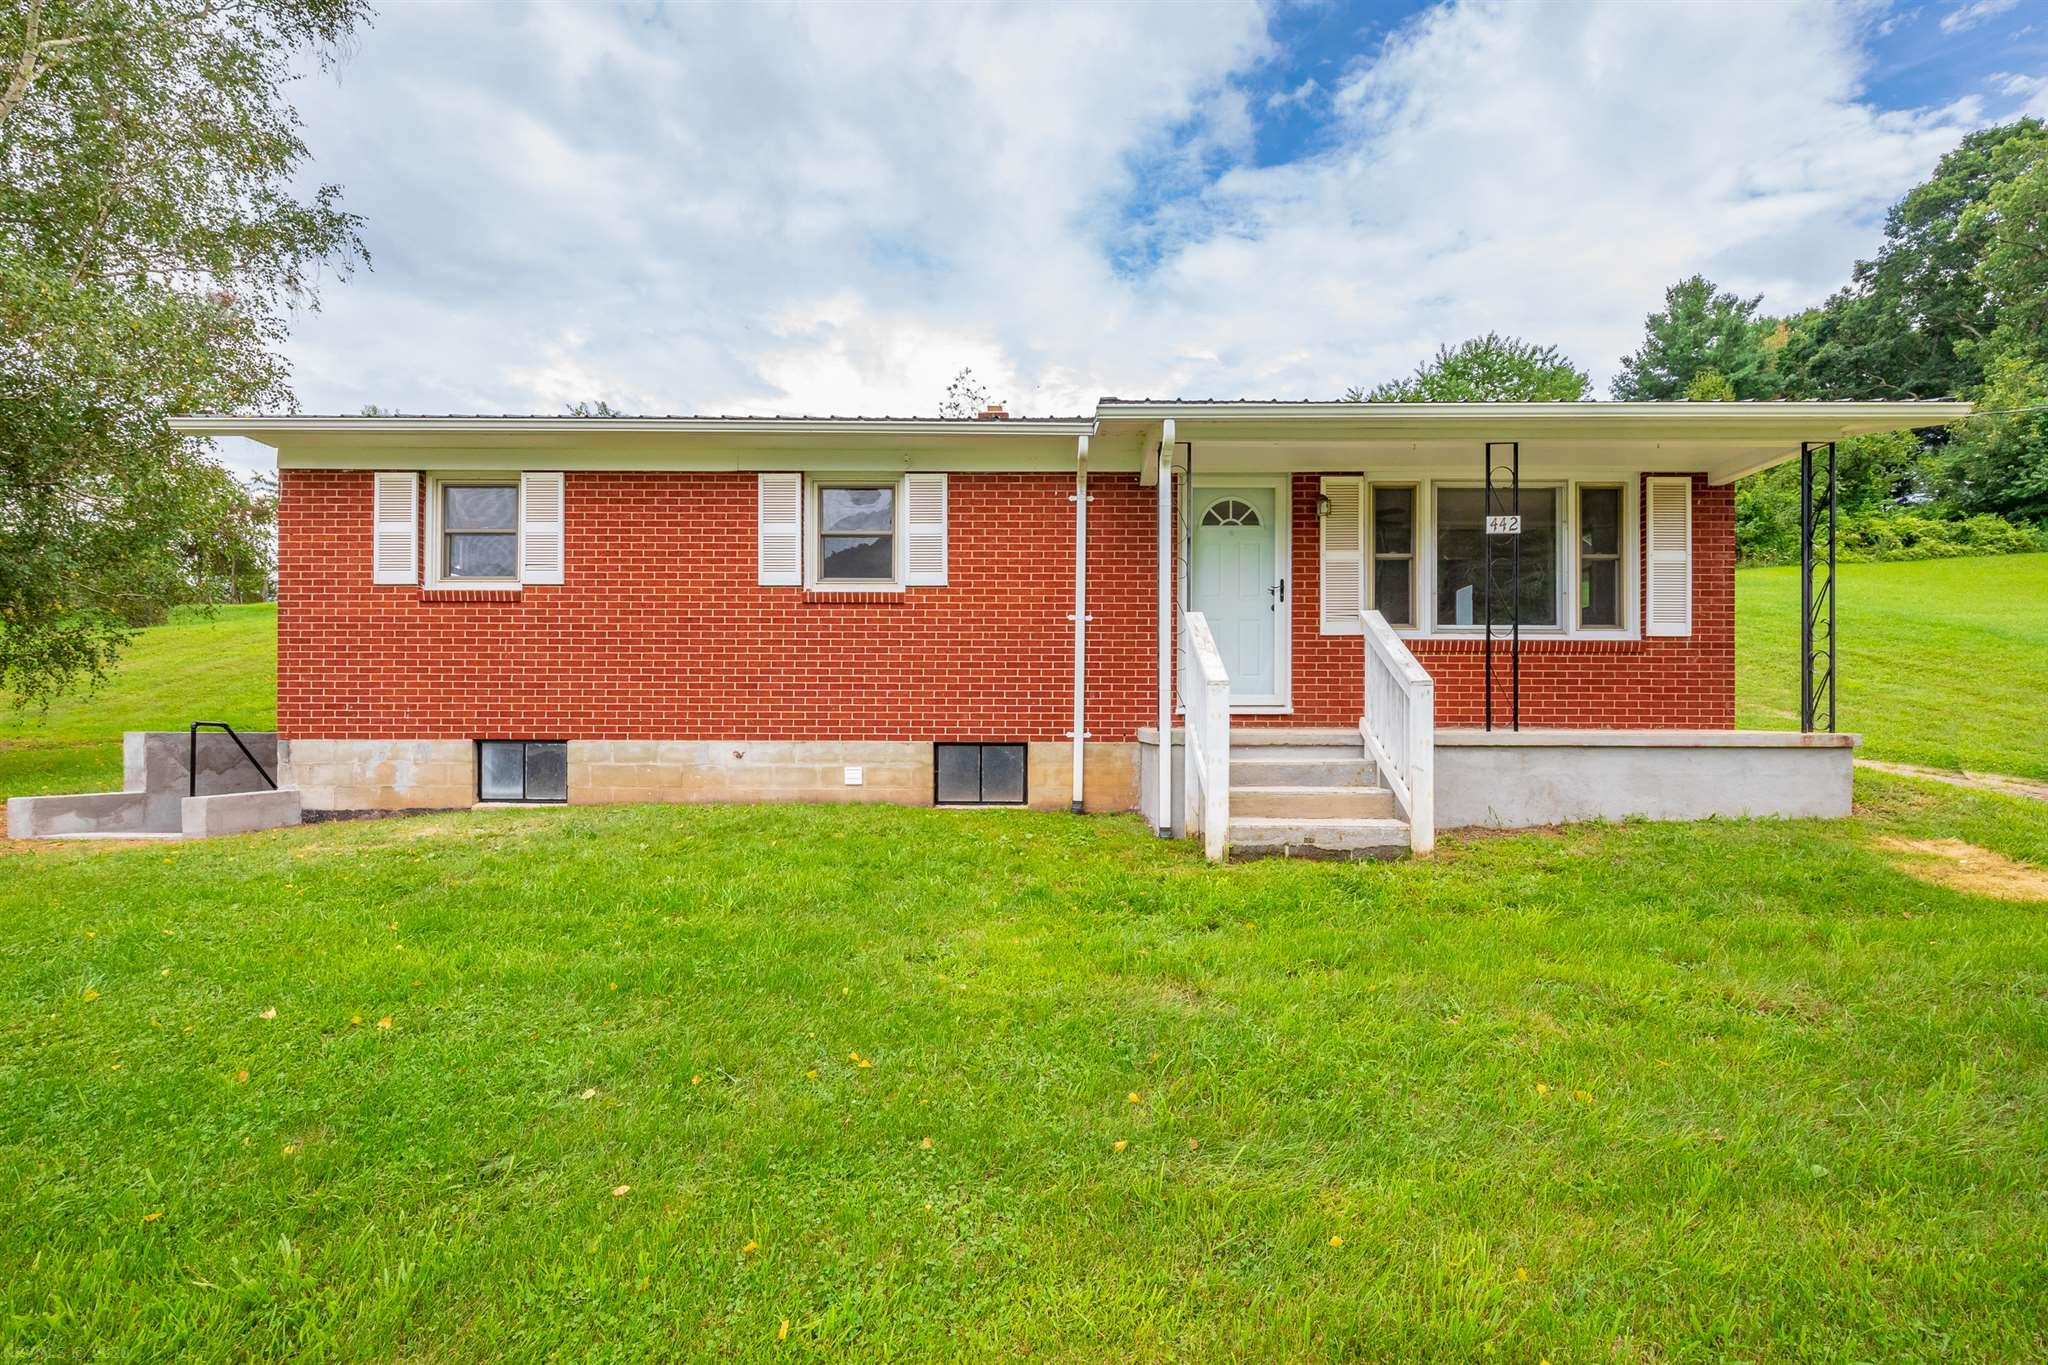 This home is MOVE IN READY! Lots of updates. The kitchen has been remodeled, newer bathroom including tile, hardwood floors, and a big backyard for outdoor fun.